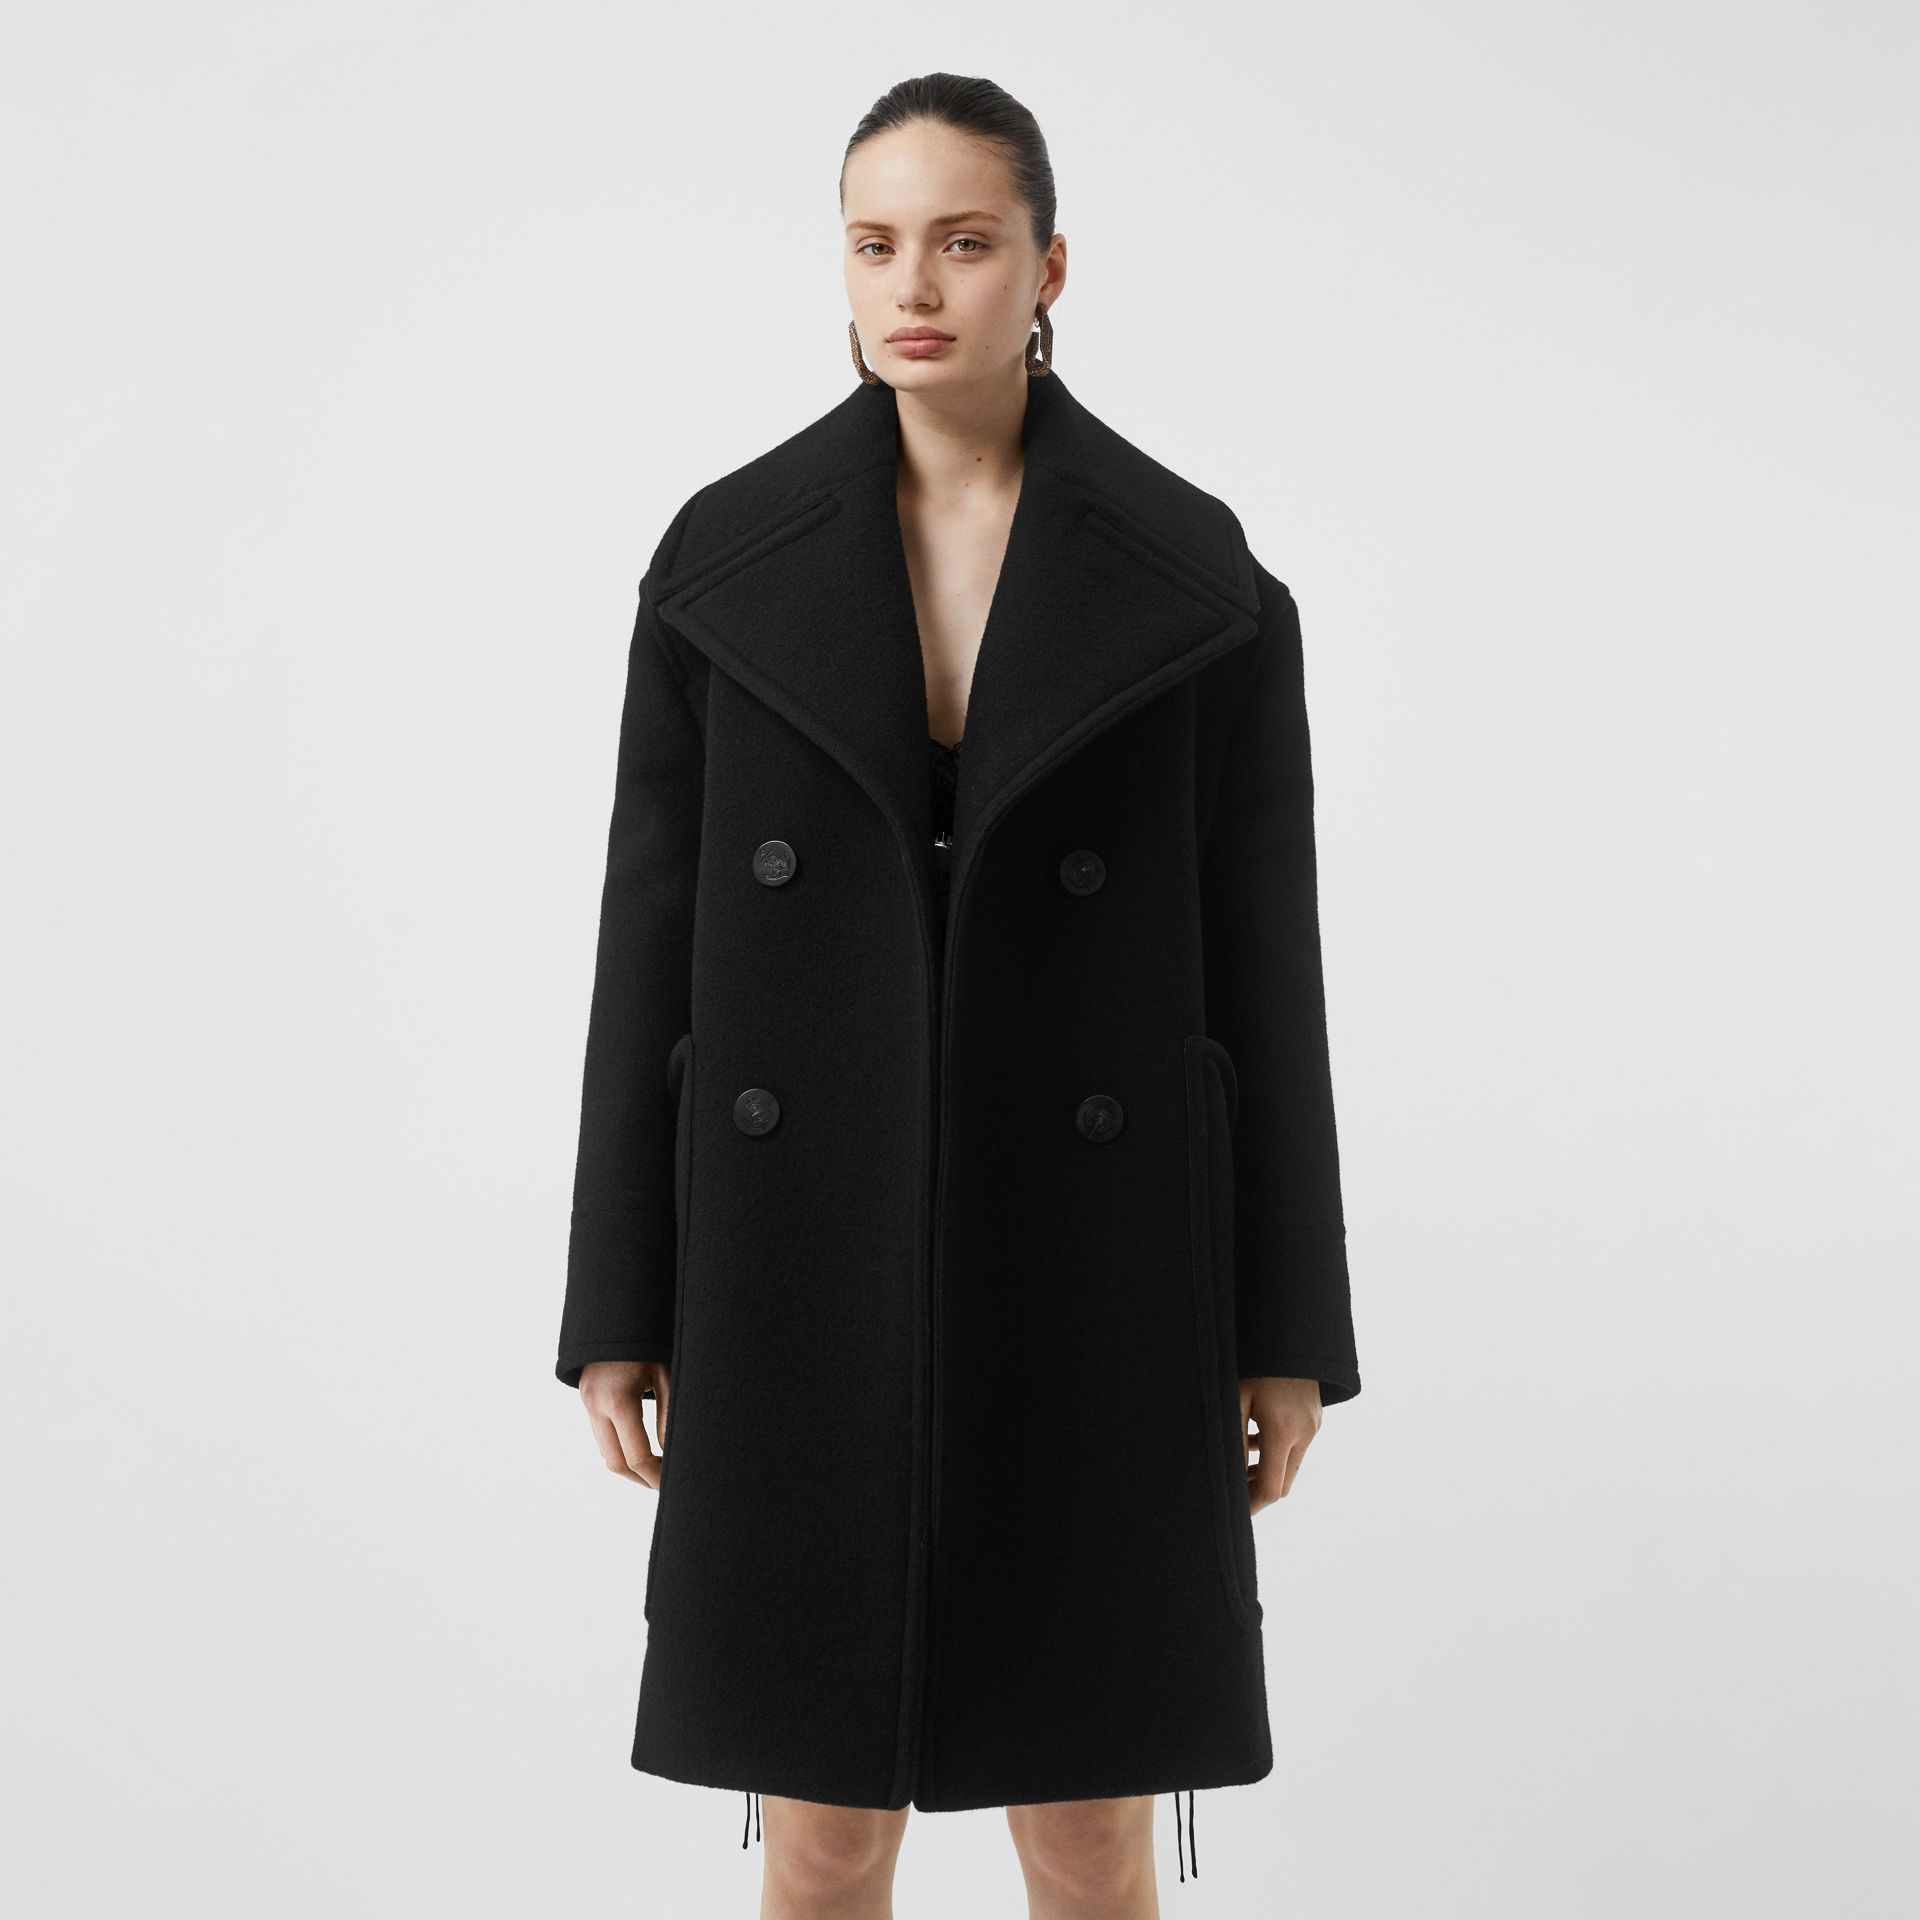 Wool Oversized Pea Coat in Black - Women | Burberry - gallery image 5